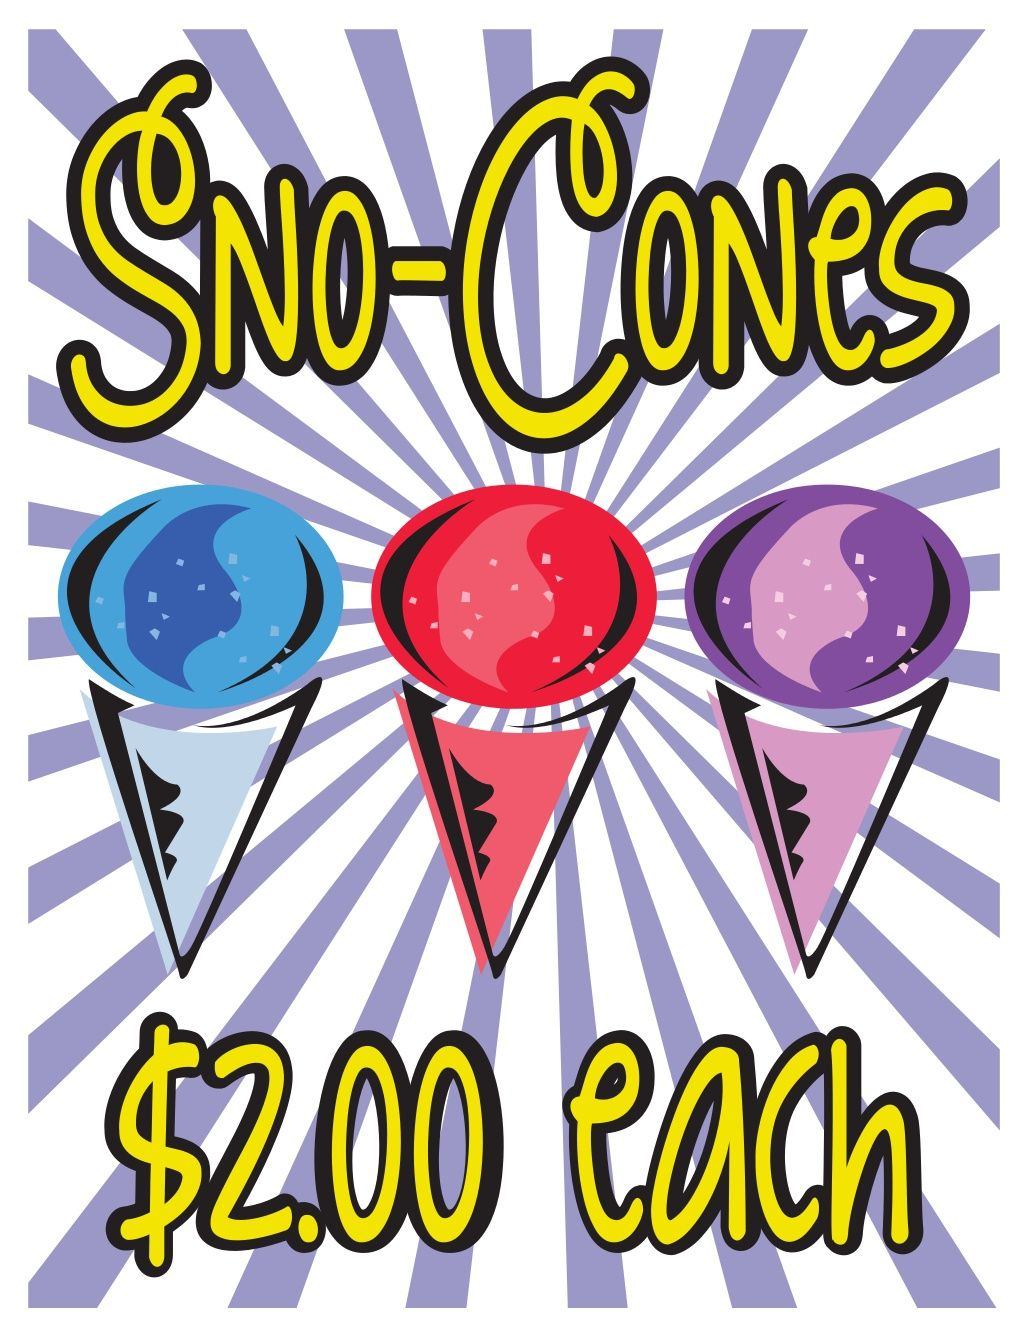 Elementary School Spring Carnival Sign Ideas & Printables ...